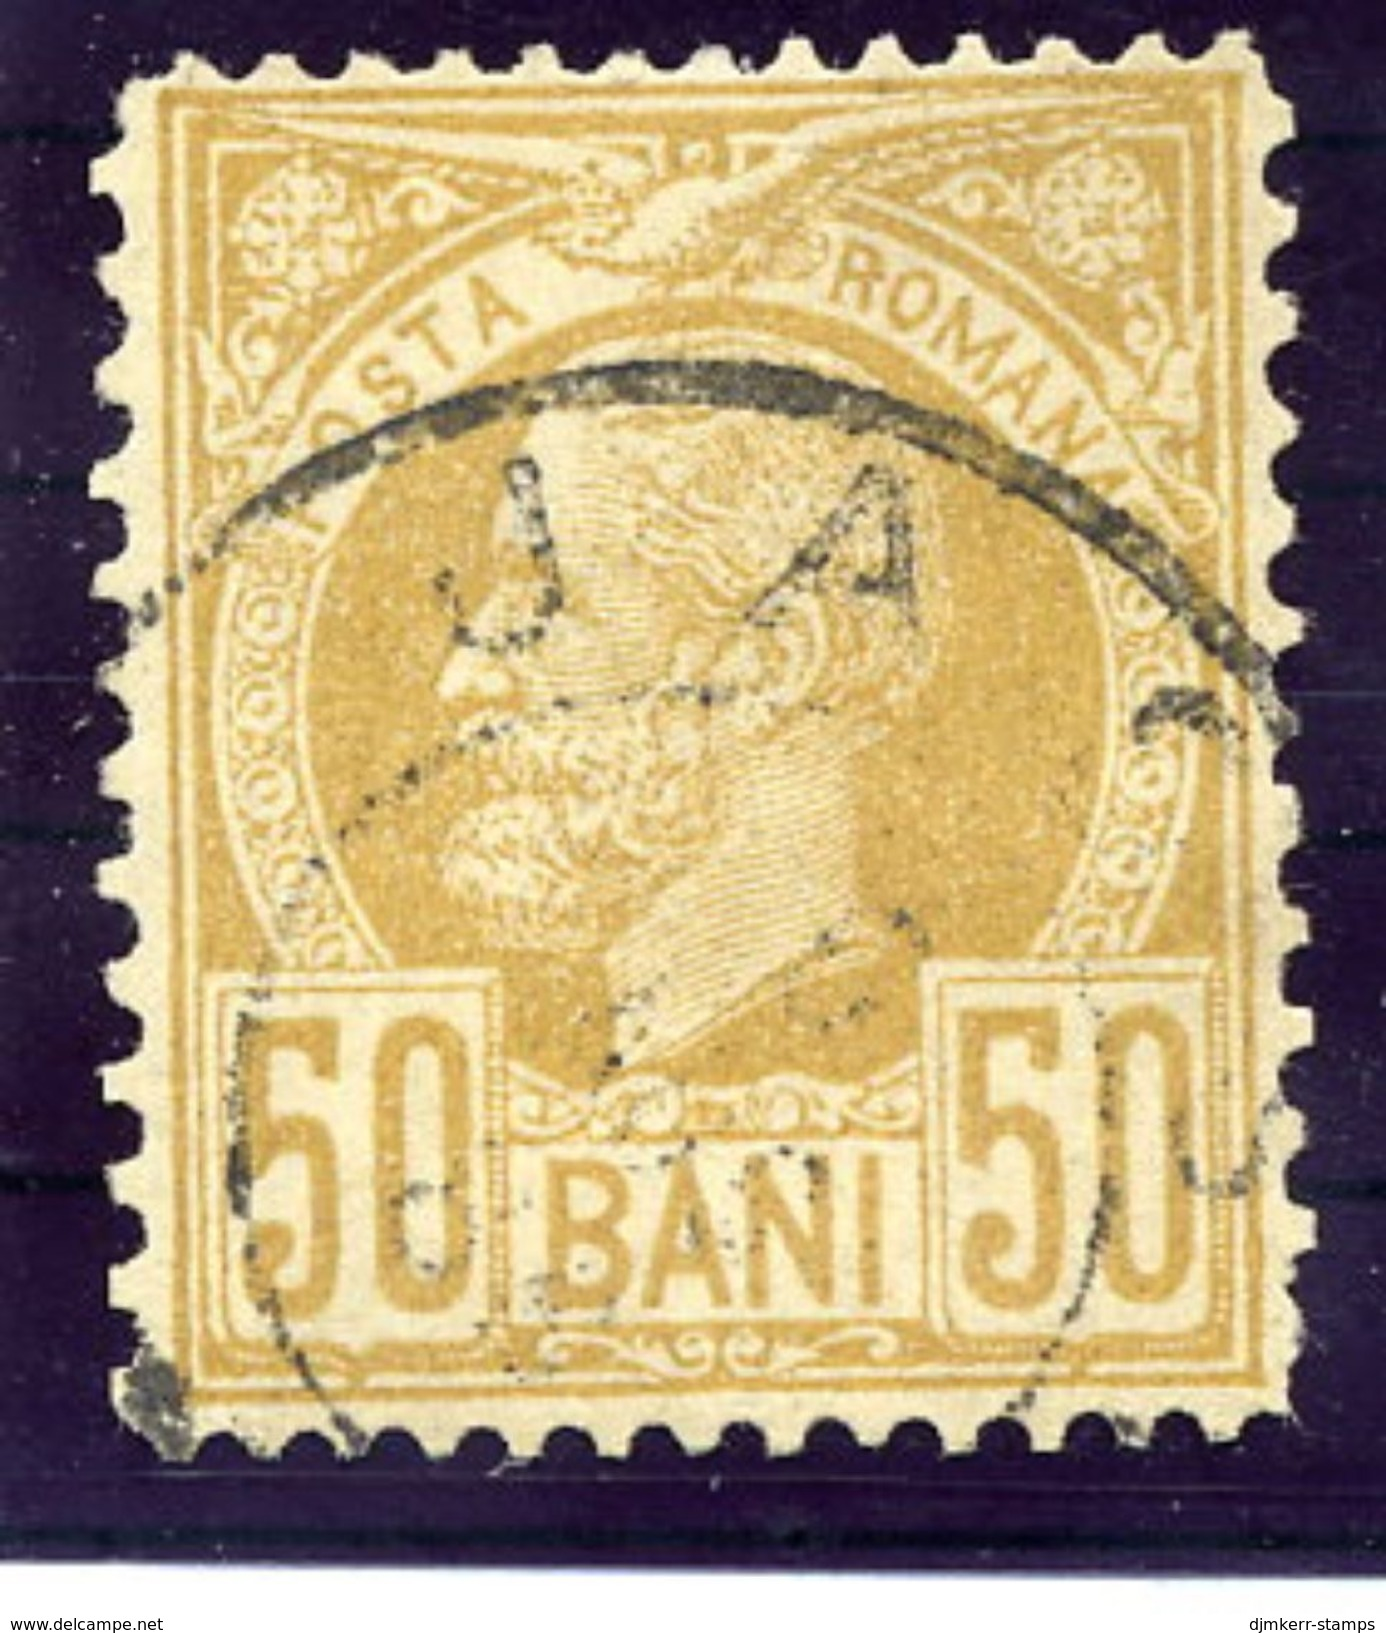 ROMANIA 1885 King Carol 50 B. Perforated 13½:11½, Used.  SG 199, Michel 69 - Used Stamps